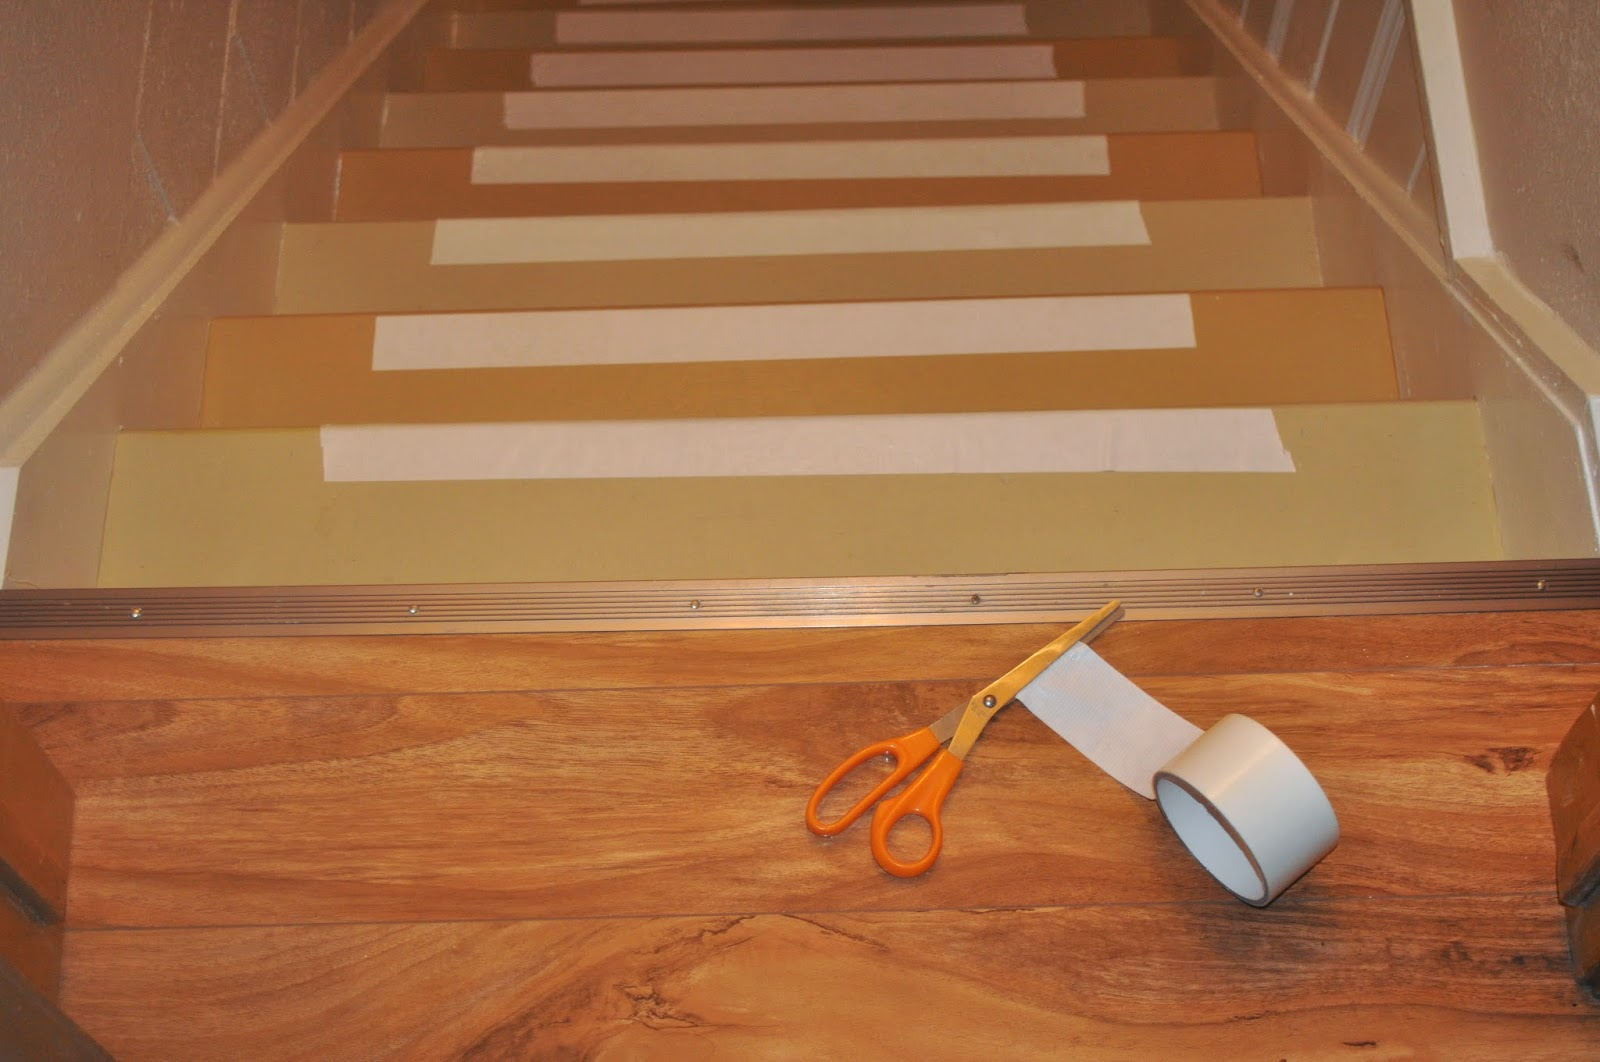 runner, overstock, runner installation, diy, easy, before and after, project, bostitch, staple gun, carpet pad, one hour, before, after, before and after, basement, hallway, stairs